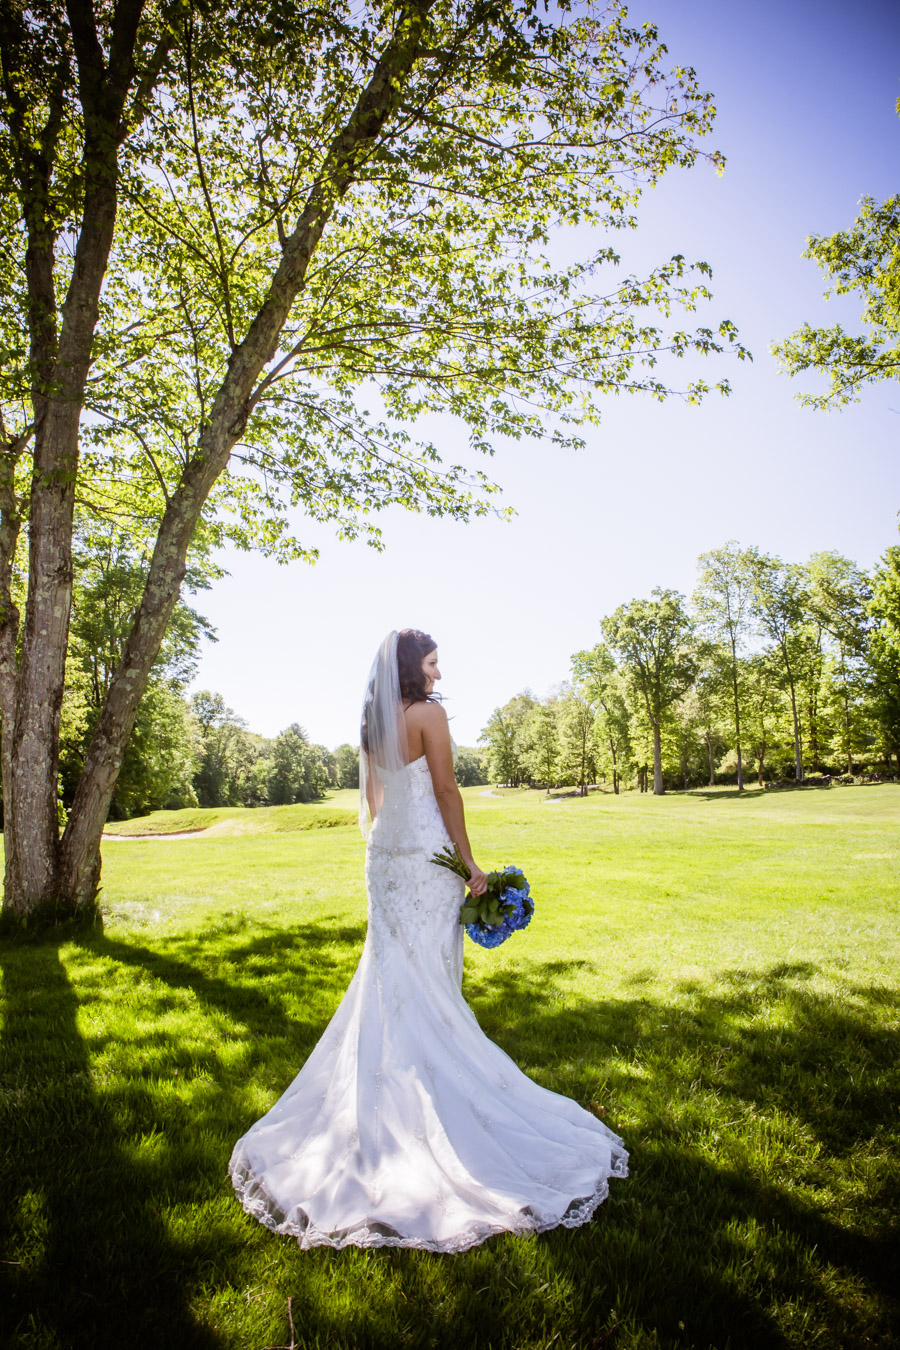 NEPA_Pocono_Weddings_Rob_Lettieri_Photography_07.jpg